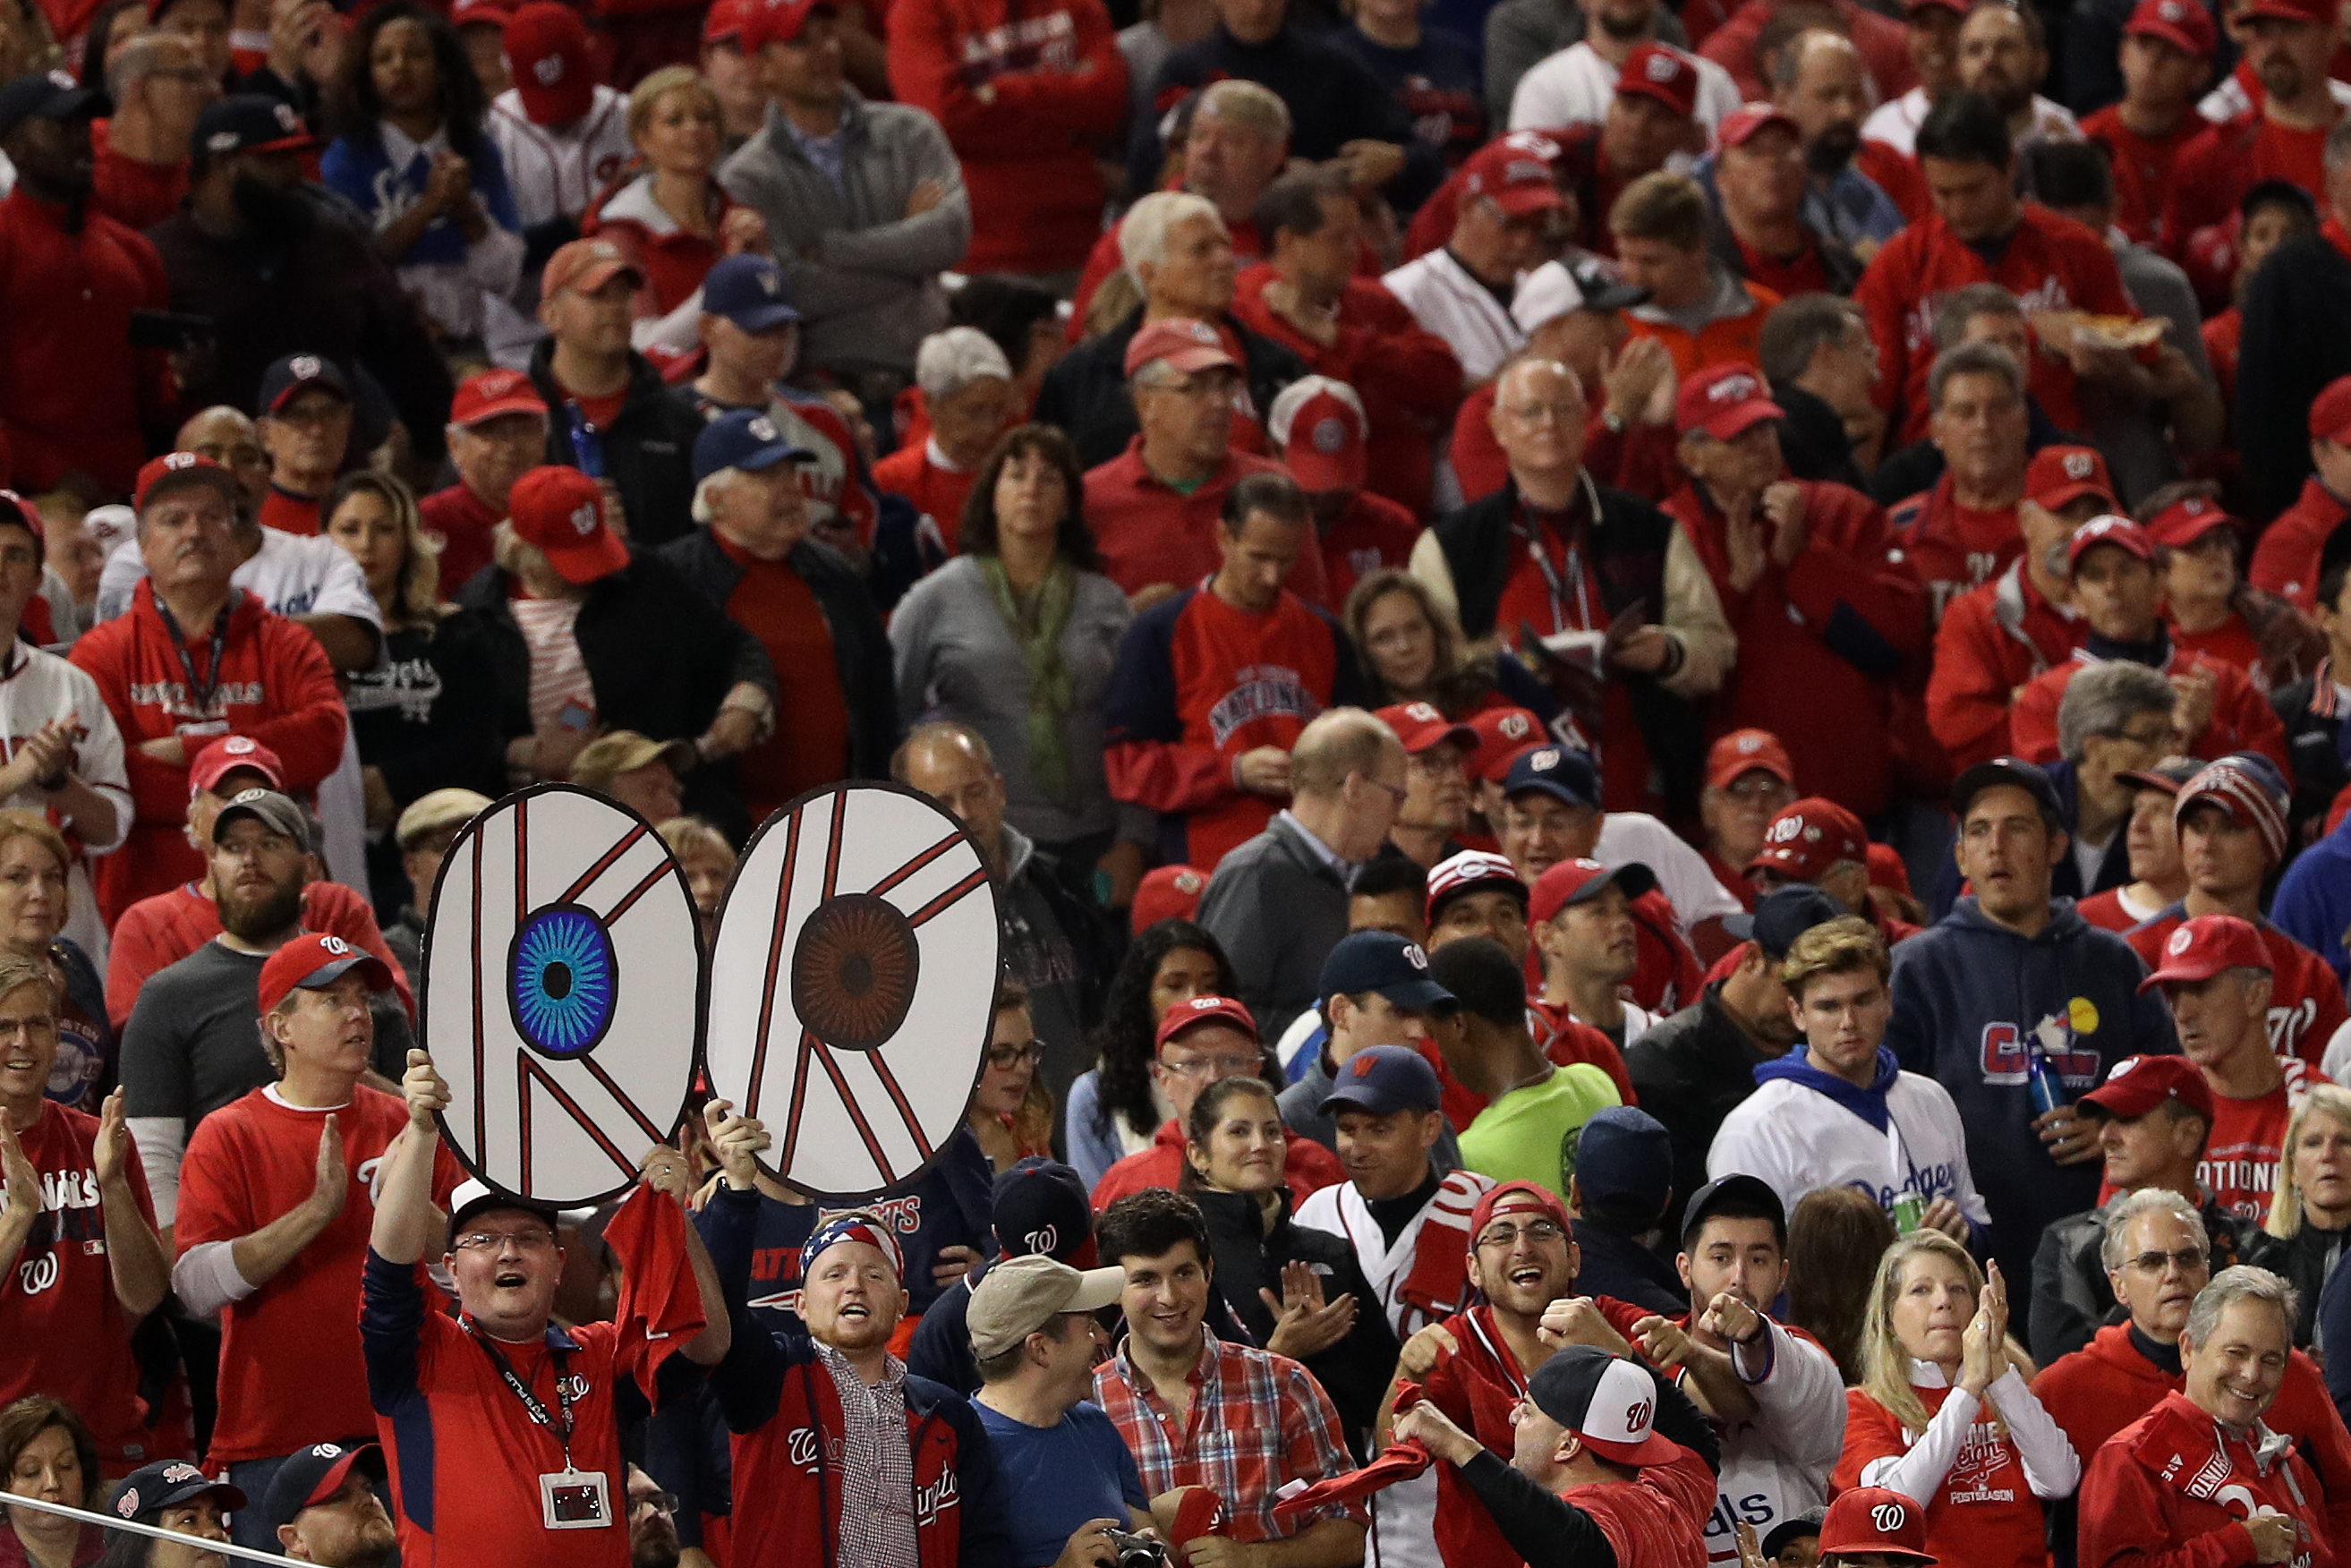 Cincinnati celebrates annual 'baseball holiday' as Reds open